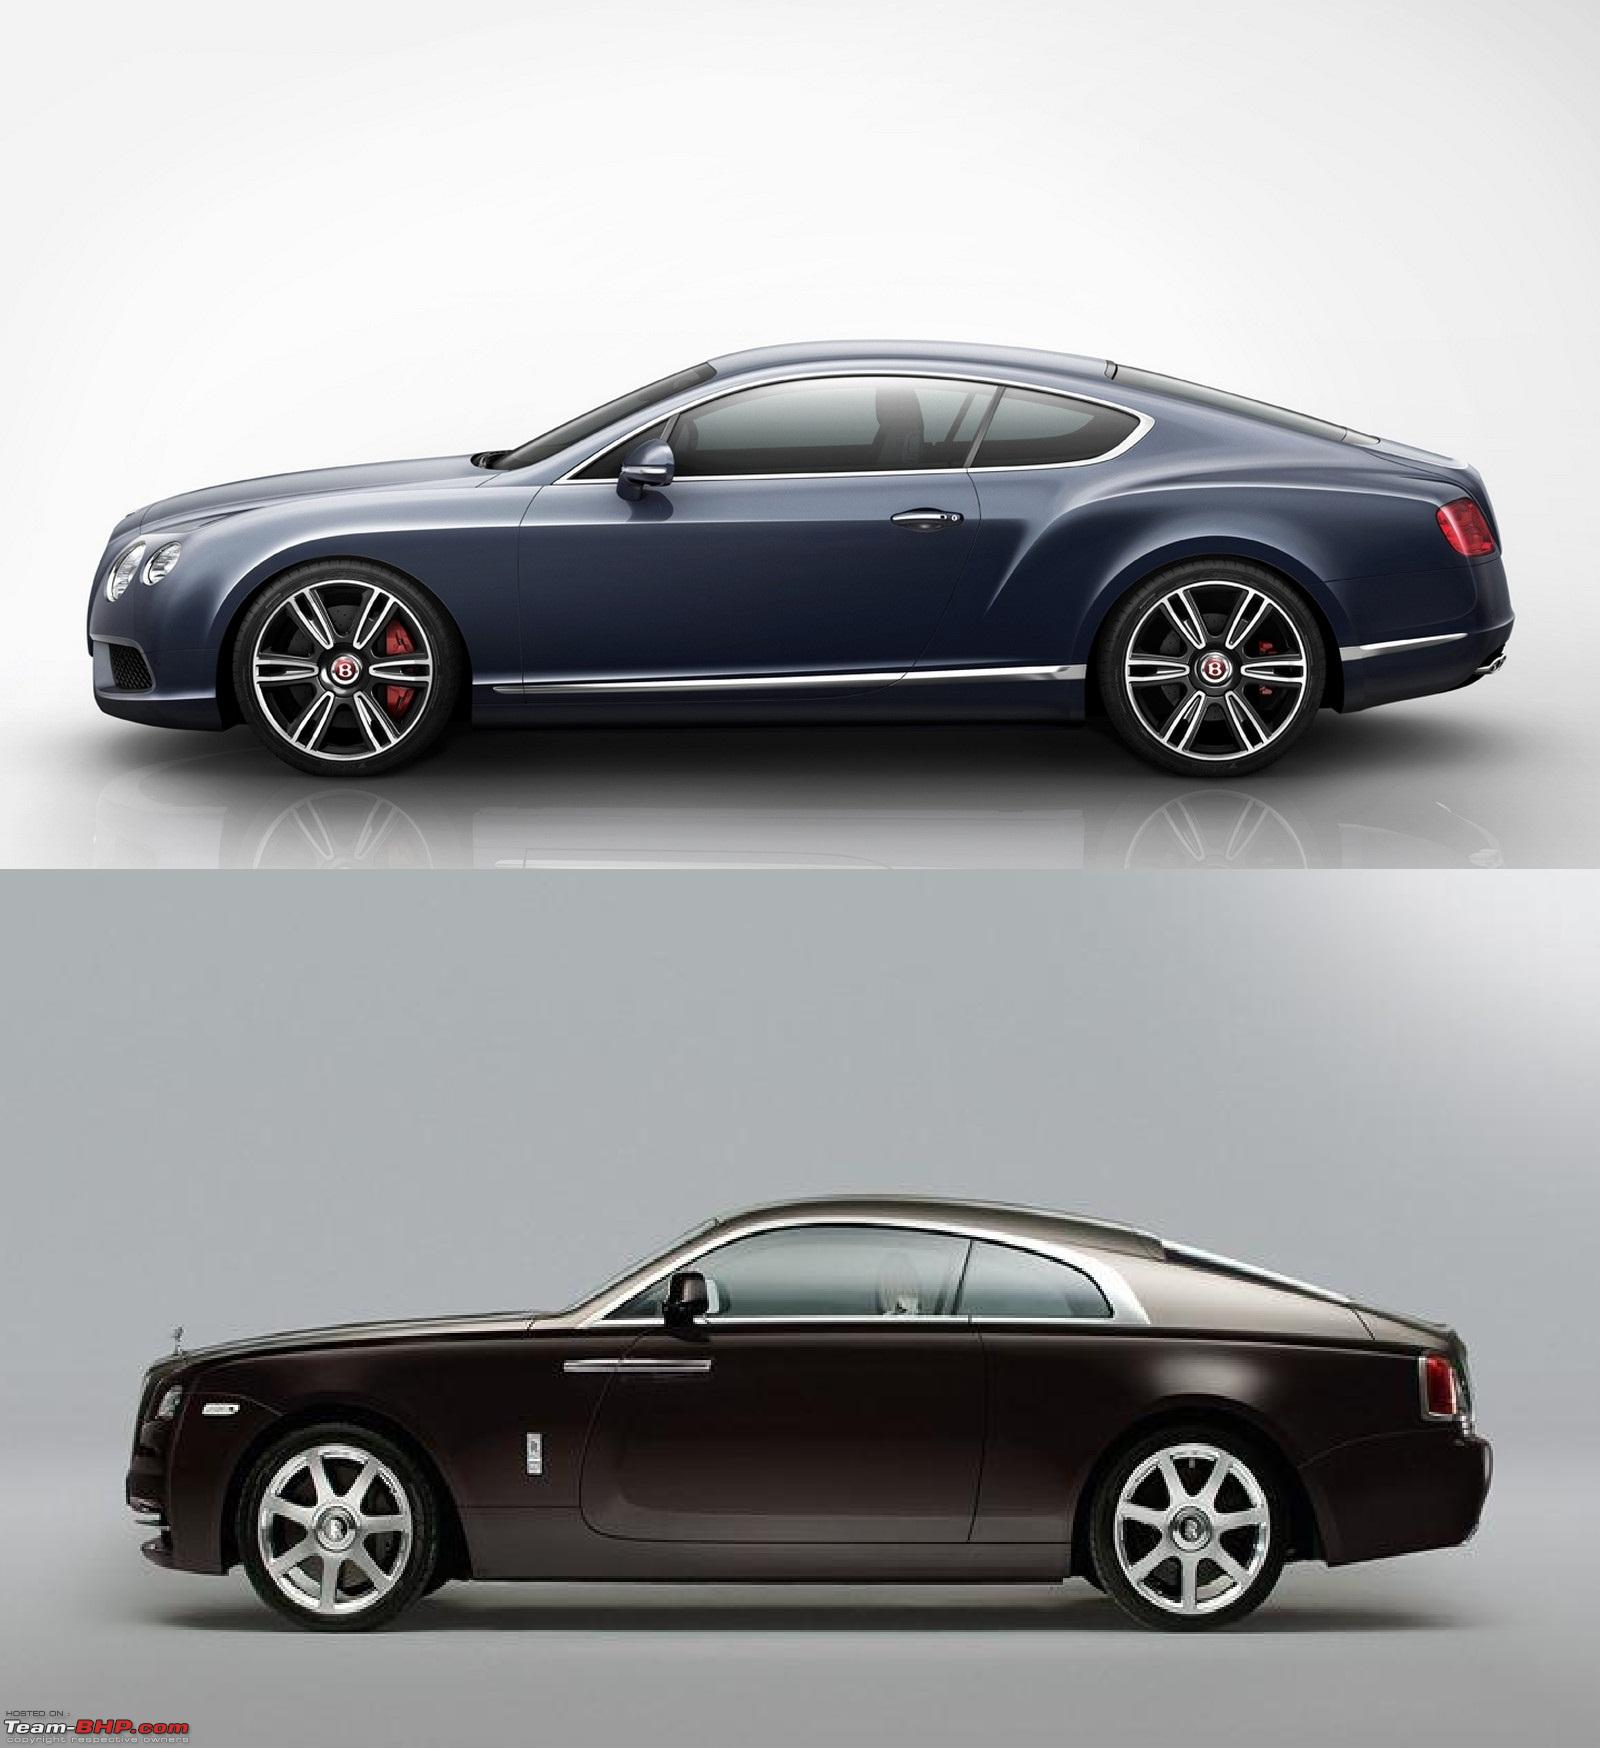 Rolls Royce WRAITH : Most Powerful RR Coming Up!